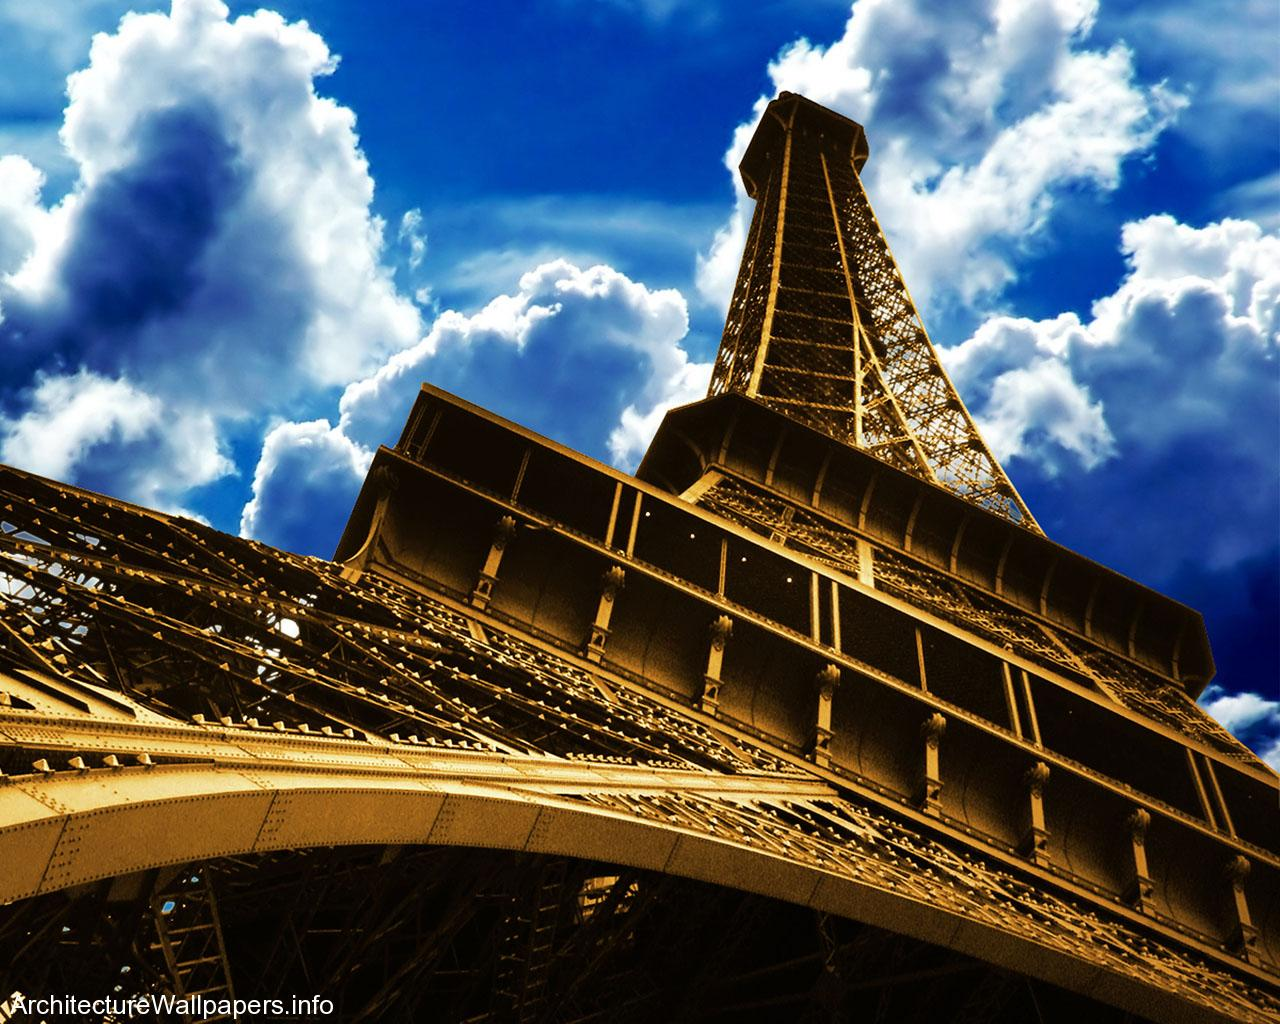 Architecture Wallpapers ~ HD Photo Stocks